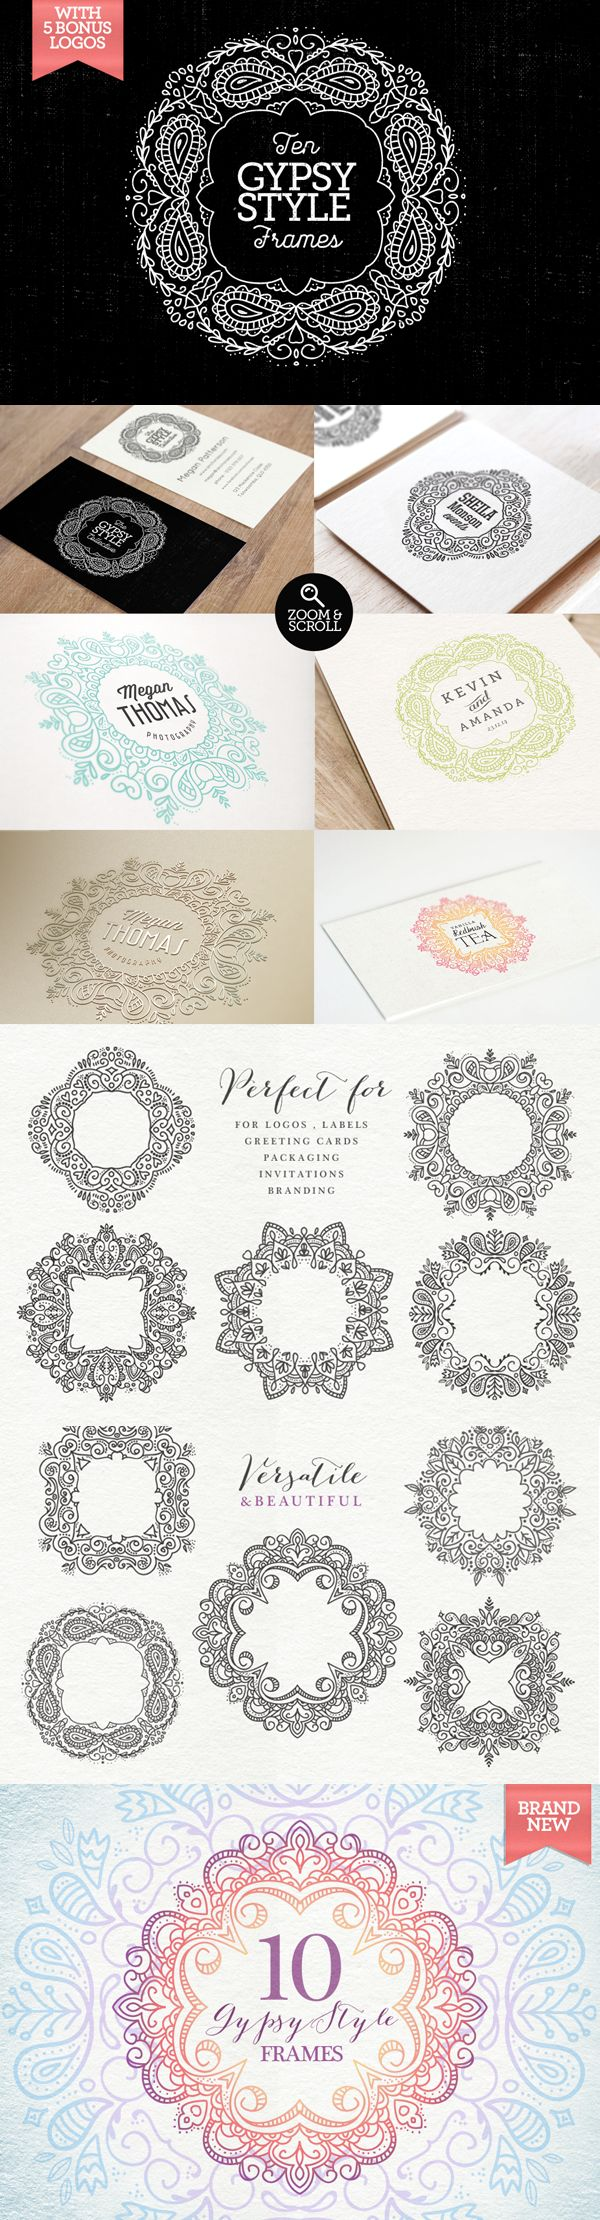 Gypsy Style Frames & Logos on Behance- Buy them